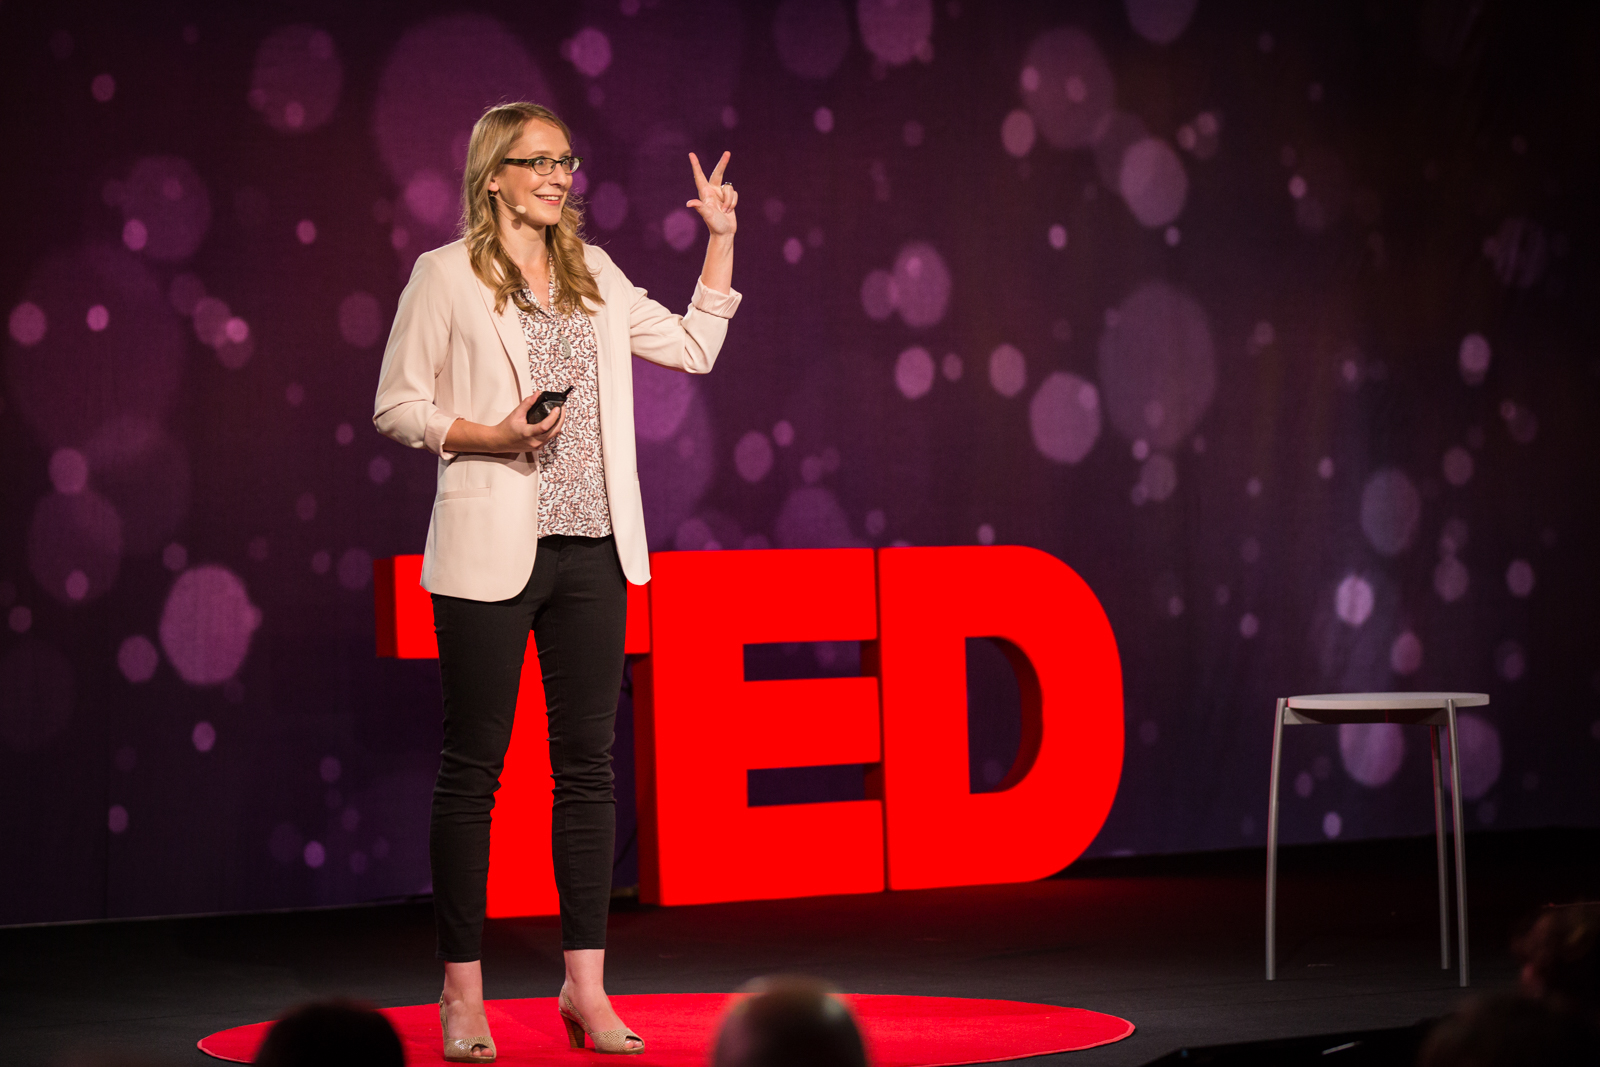 Carrie Nugent speaks at TED2016 - Dream, February 15-19, 2016, Vancouver Convention Center, Vancouver, Canada. Photo: Ryan Lash / TED